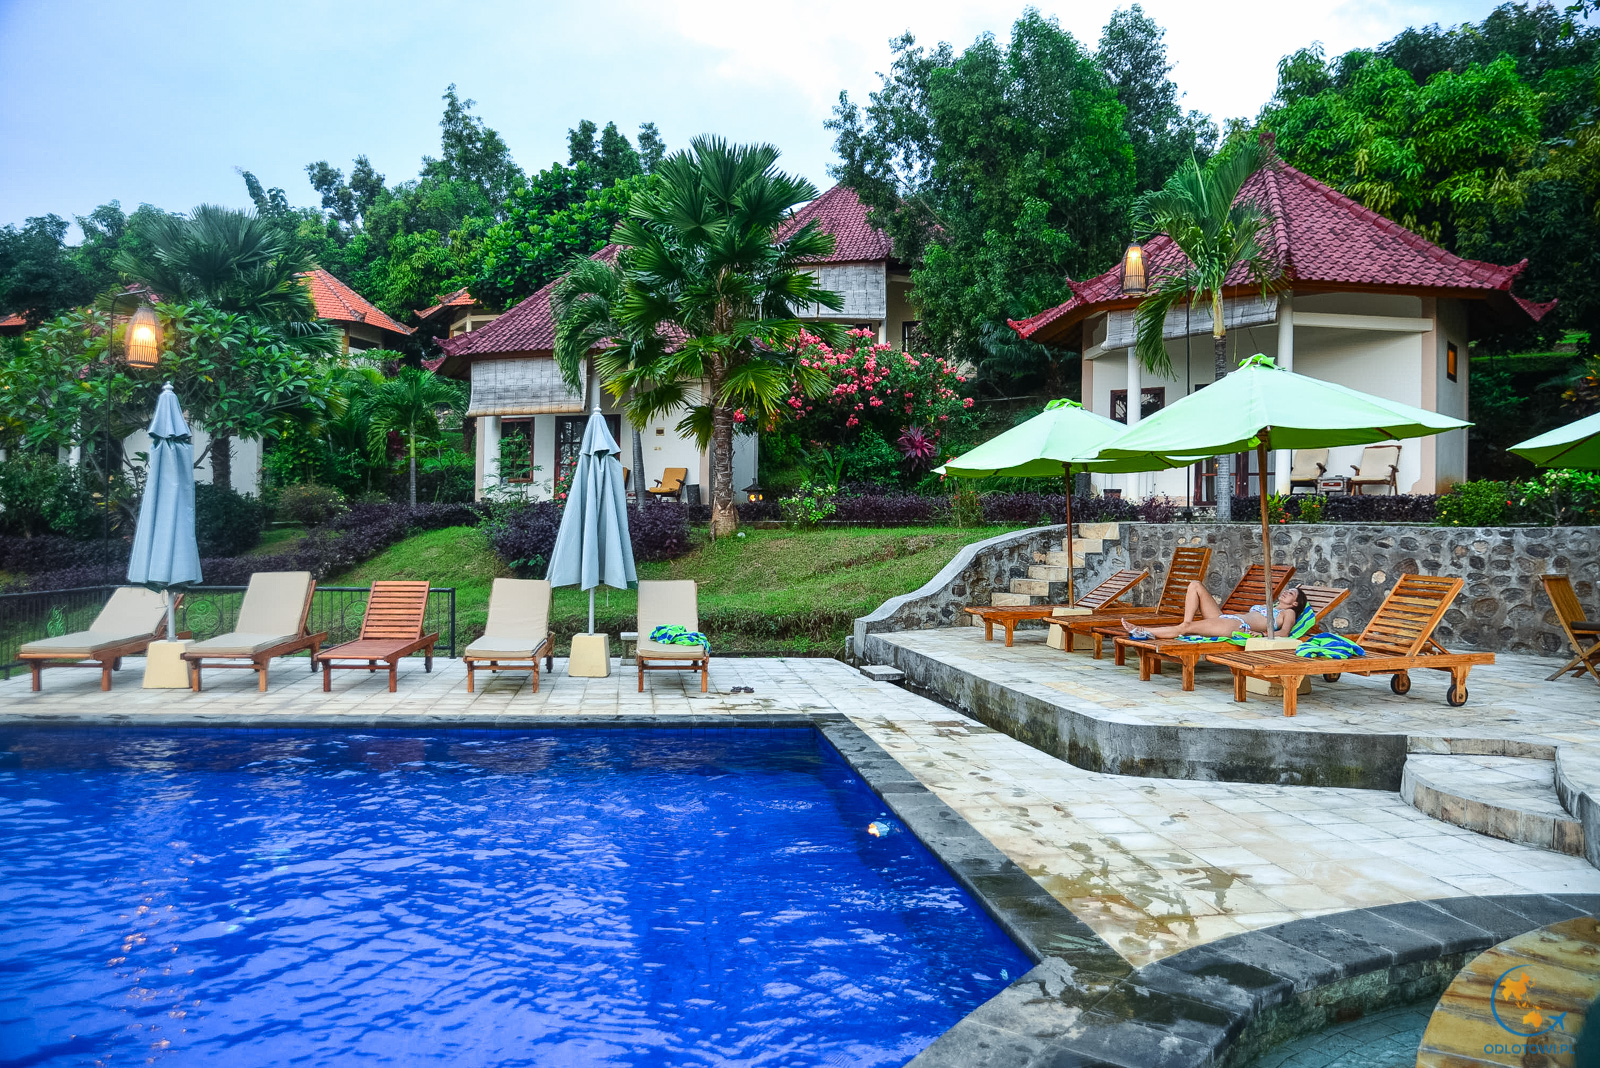 The Hamsa Resort Bali